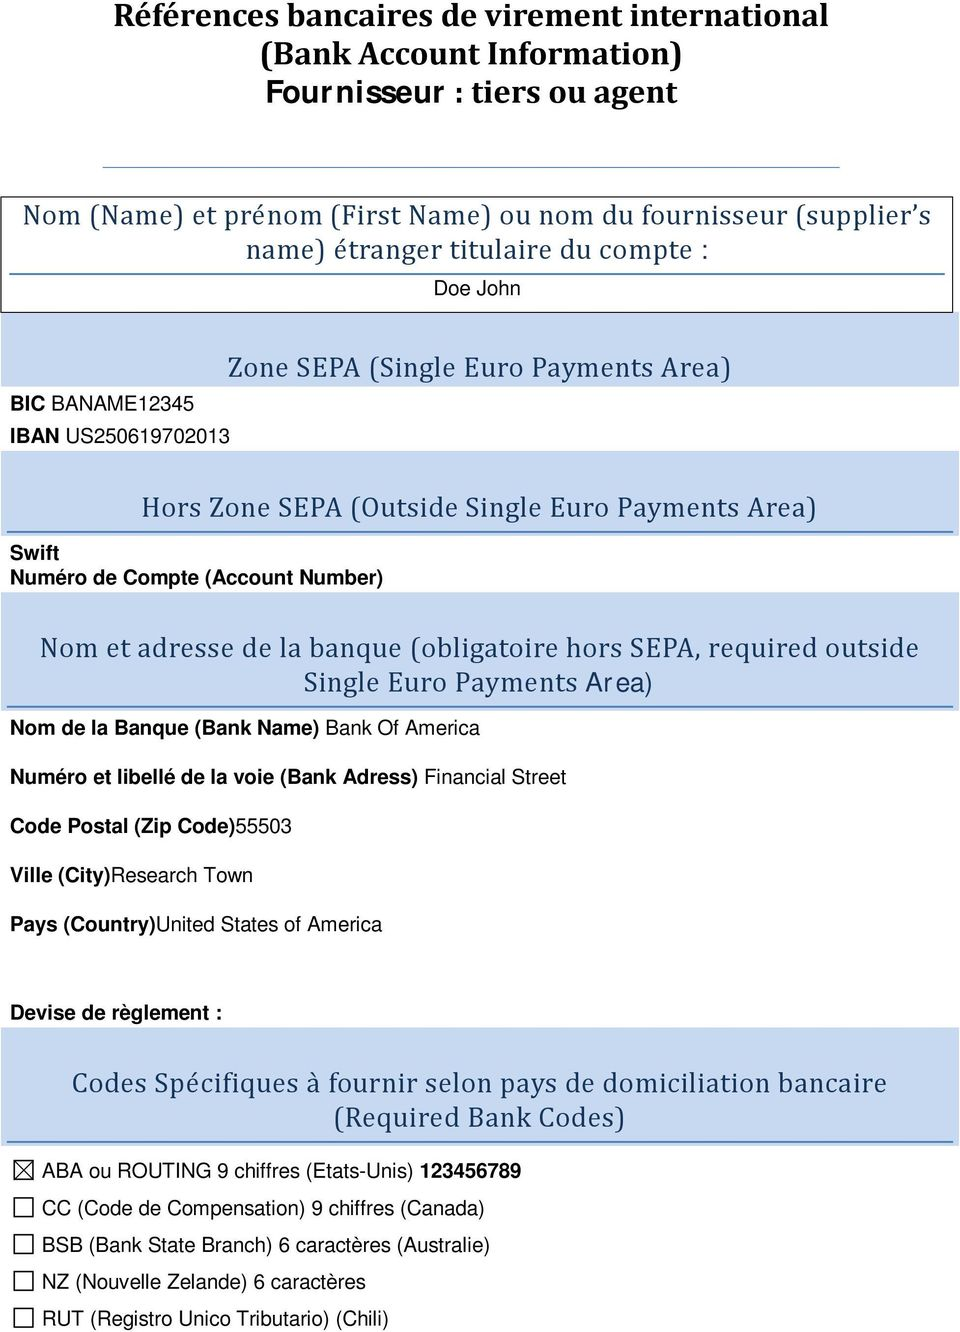 adresse de la banque (obligatoire hors SEPA, required outside Single Euro Payments Area) Nom de la Banque (Bank Name) Bank Of America Numéro et libellé de la voie (Bank Adress) Financial Street Code